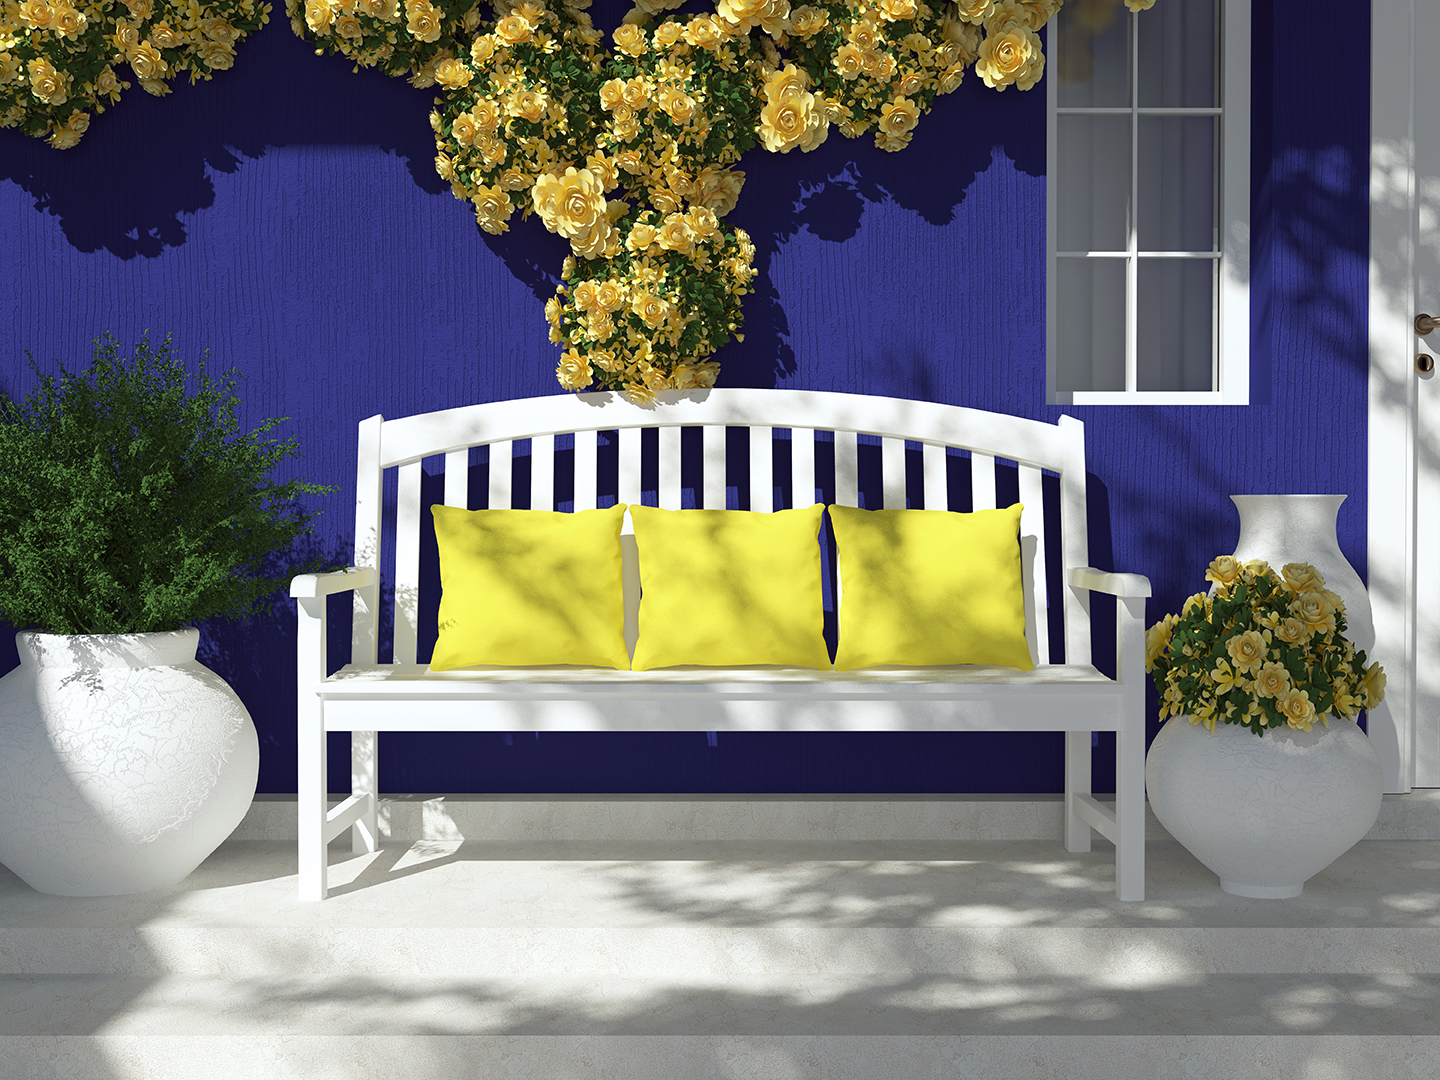 8 Creative Ideas to Give Your Home's Exterior a Makeover